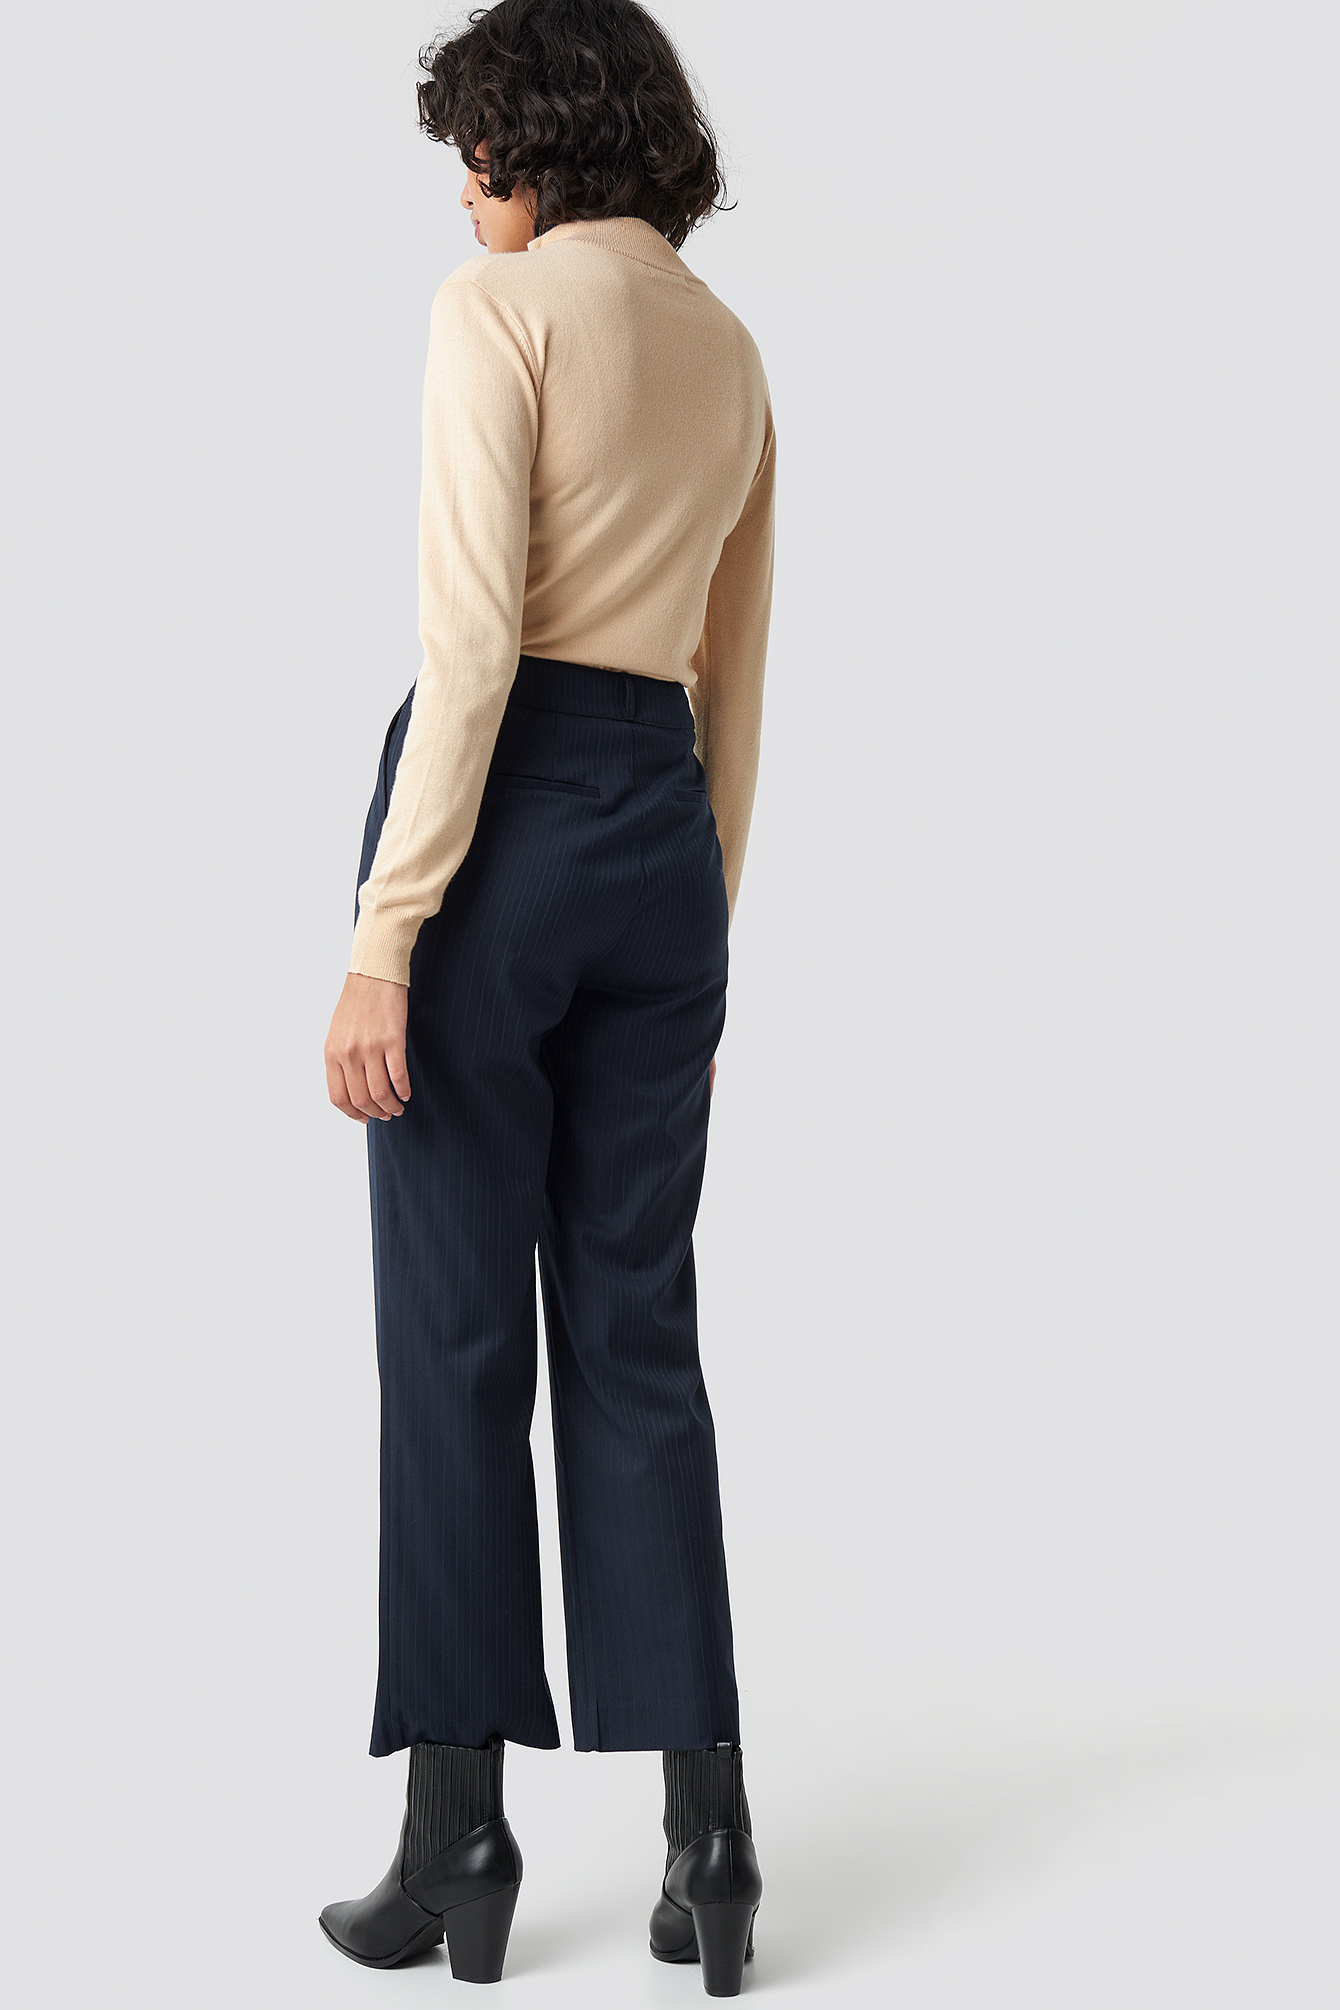 Straight Cropped Striped Suit Pants NA-KD.COM